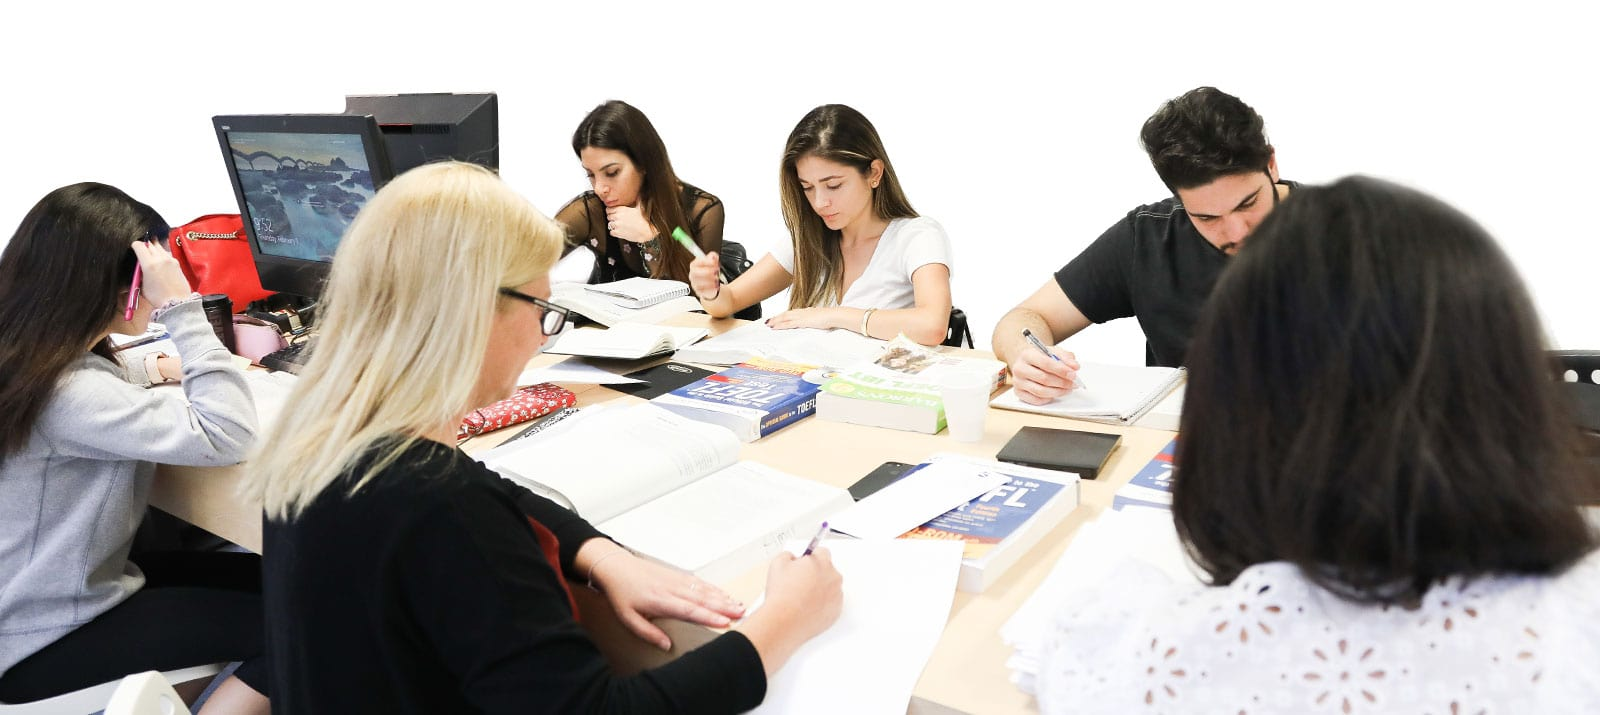 Students in Test Preparation Courses